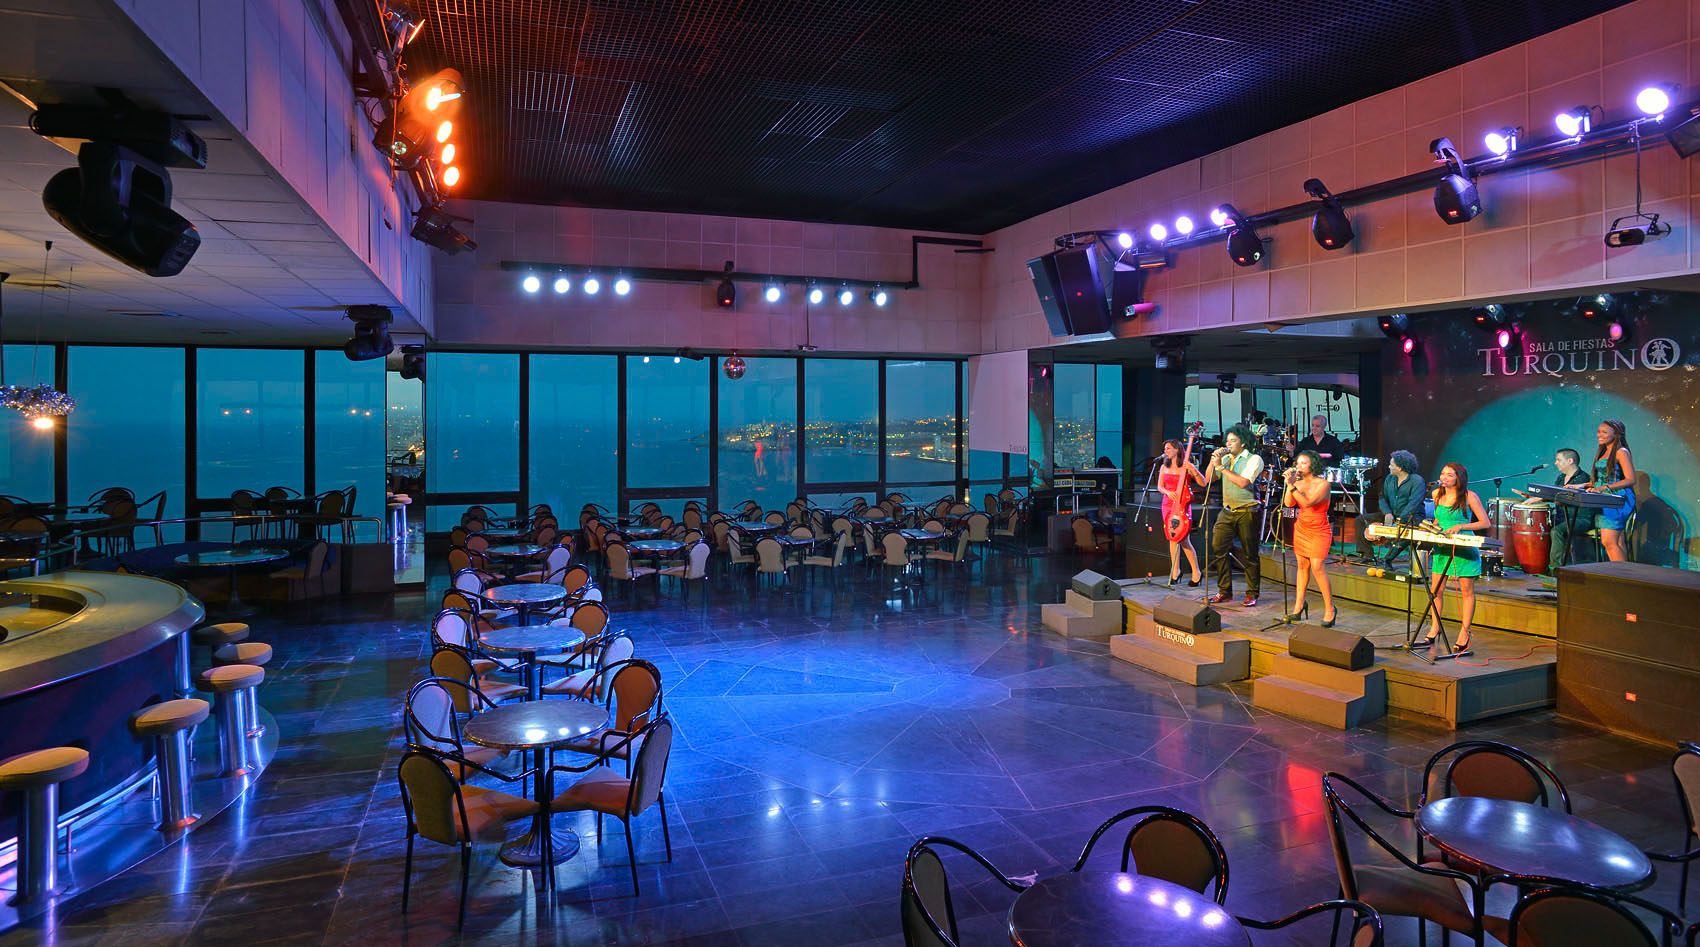 Tryp Habana Libre Cuba Cabaret Turquino A Stroll Through The Stars Blog